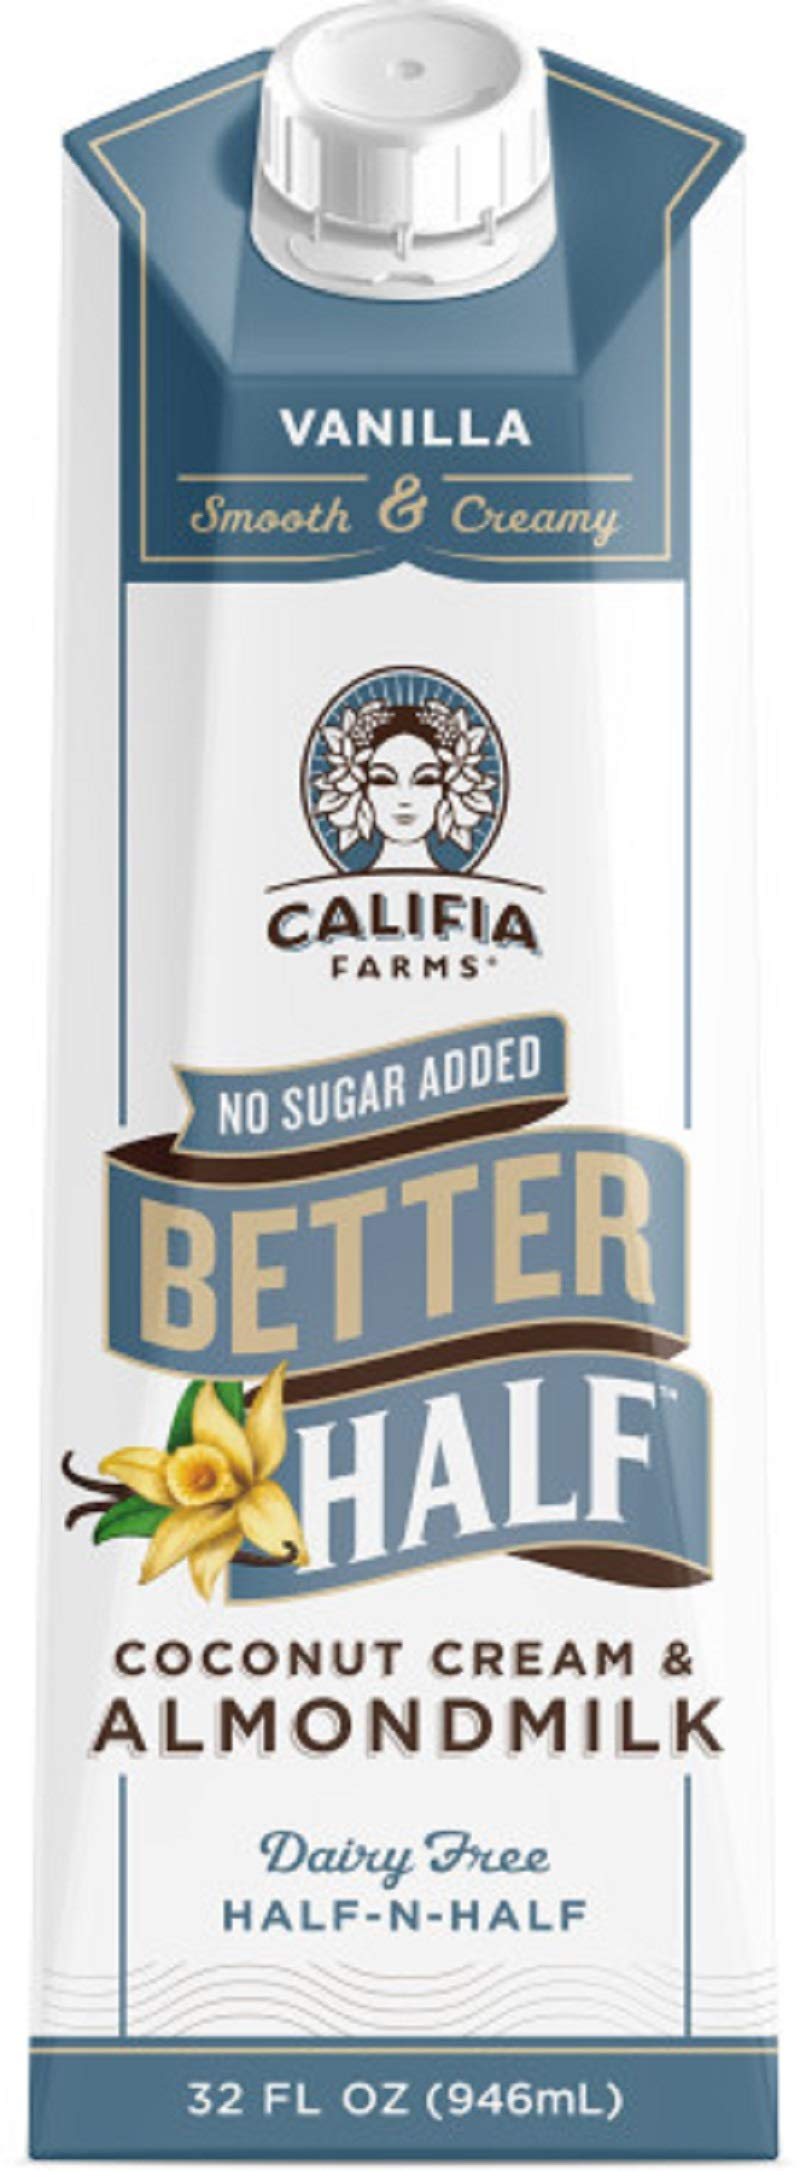 Califia Farms Vanilla Better Half Coffee Creamer, 32 Oz (Pack of 6) | Coconut Cream and Almondmilk | Half & Half | Dairy Free | Plant Based | Nut Milk | Vegan | Non-GMO by Califia Farms